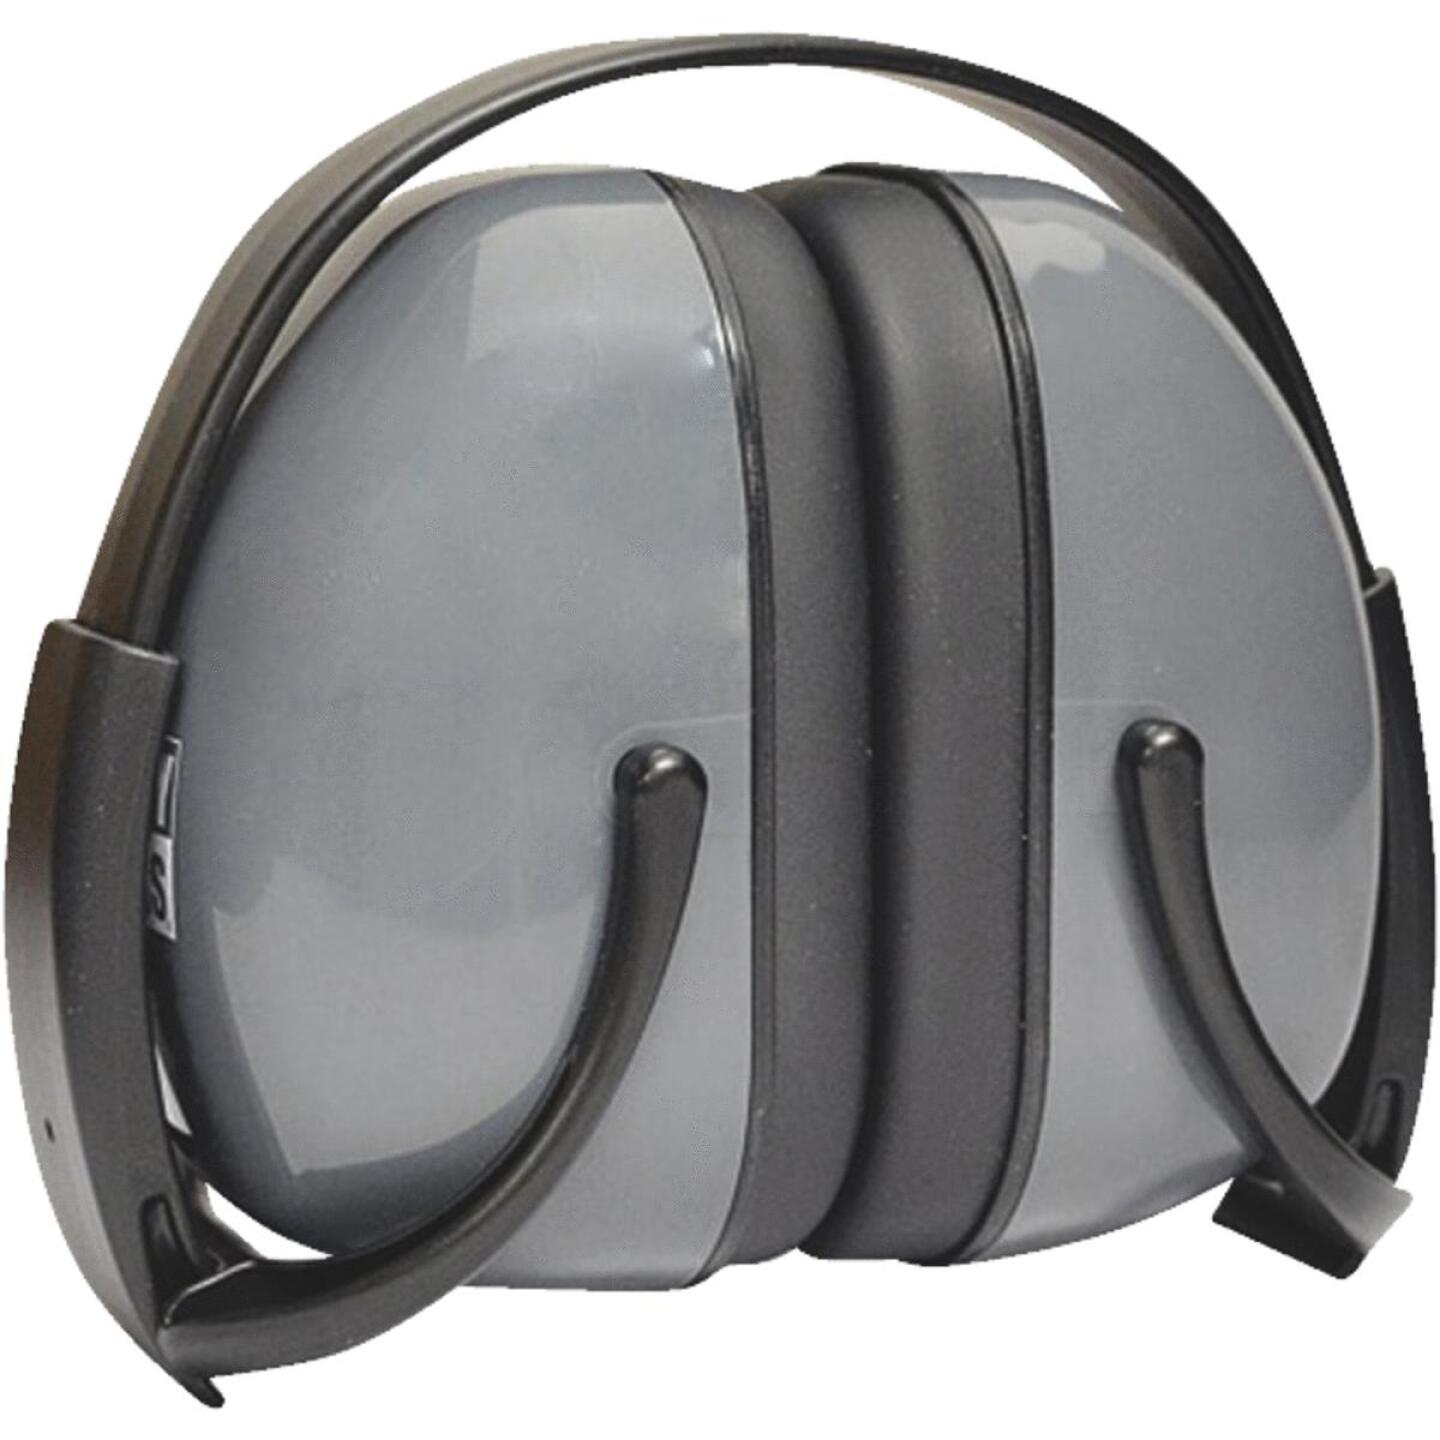 Safety Works 20 dB NRR Foldable Earmuffs Image 1